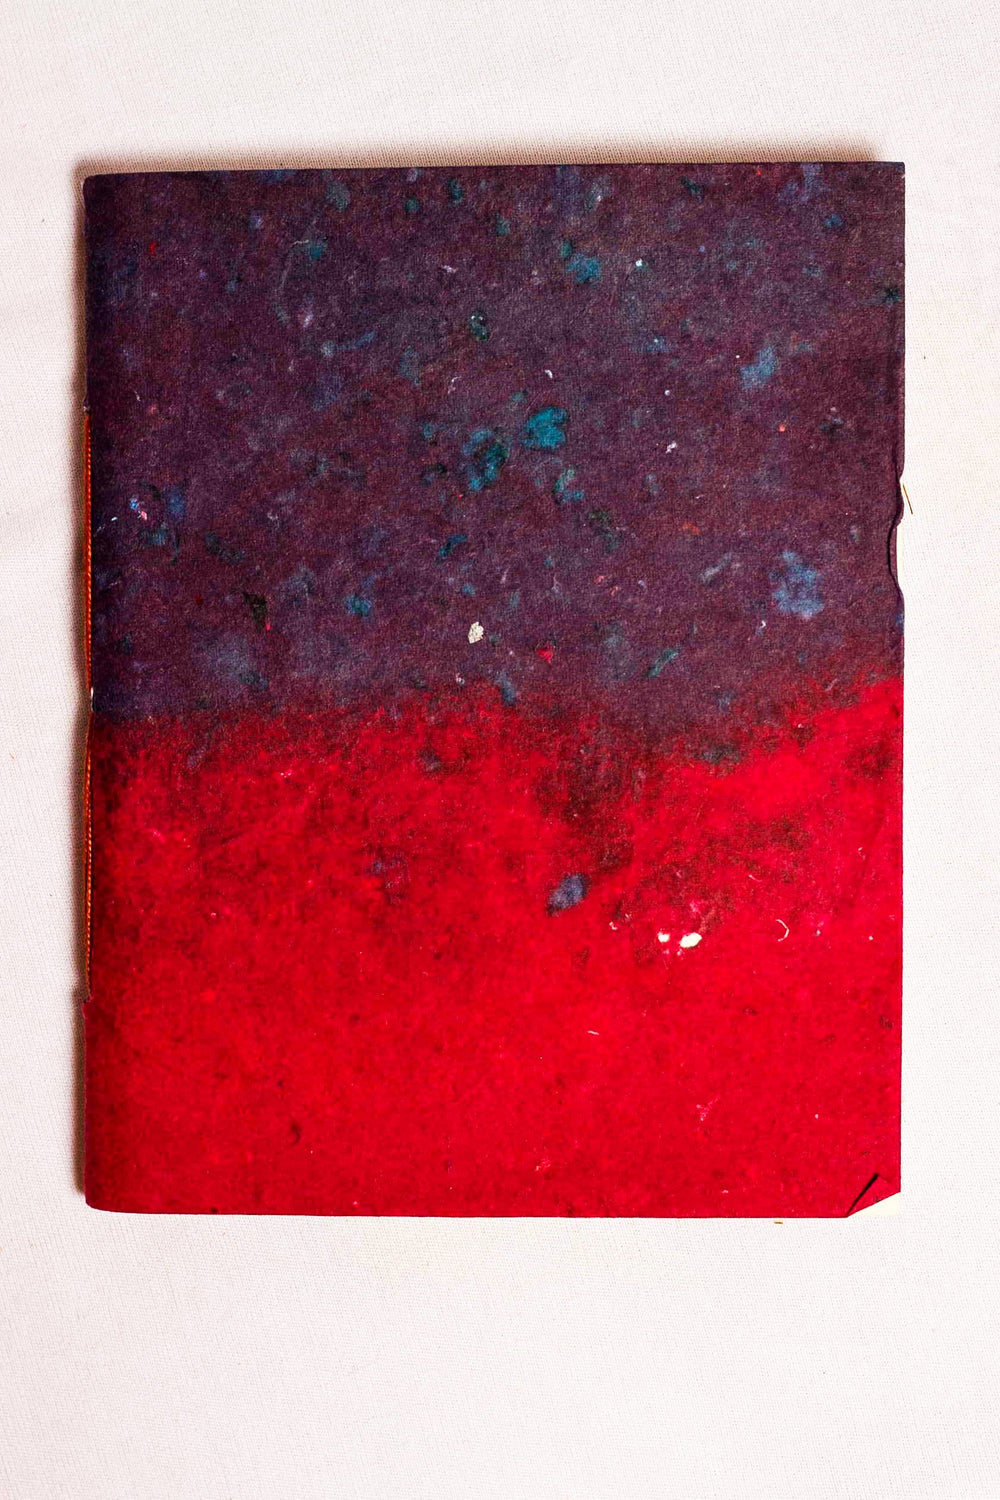 Gradient tie and dye effect covered handmade paper notebook